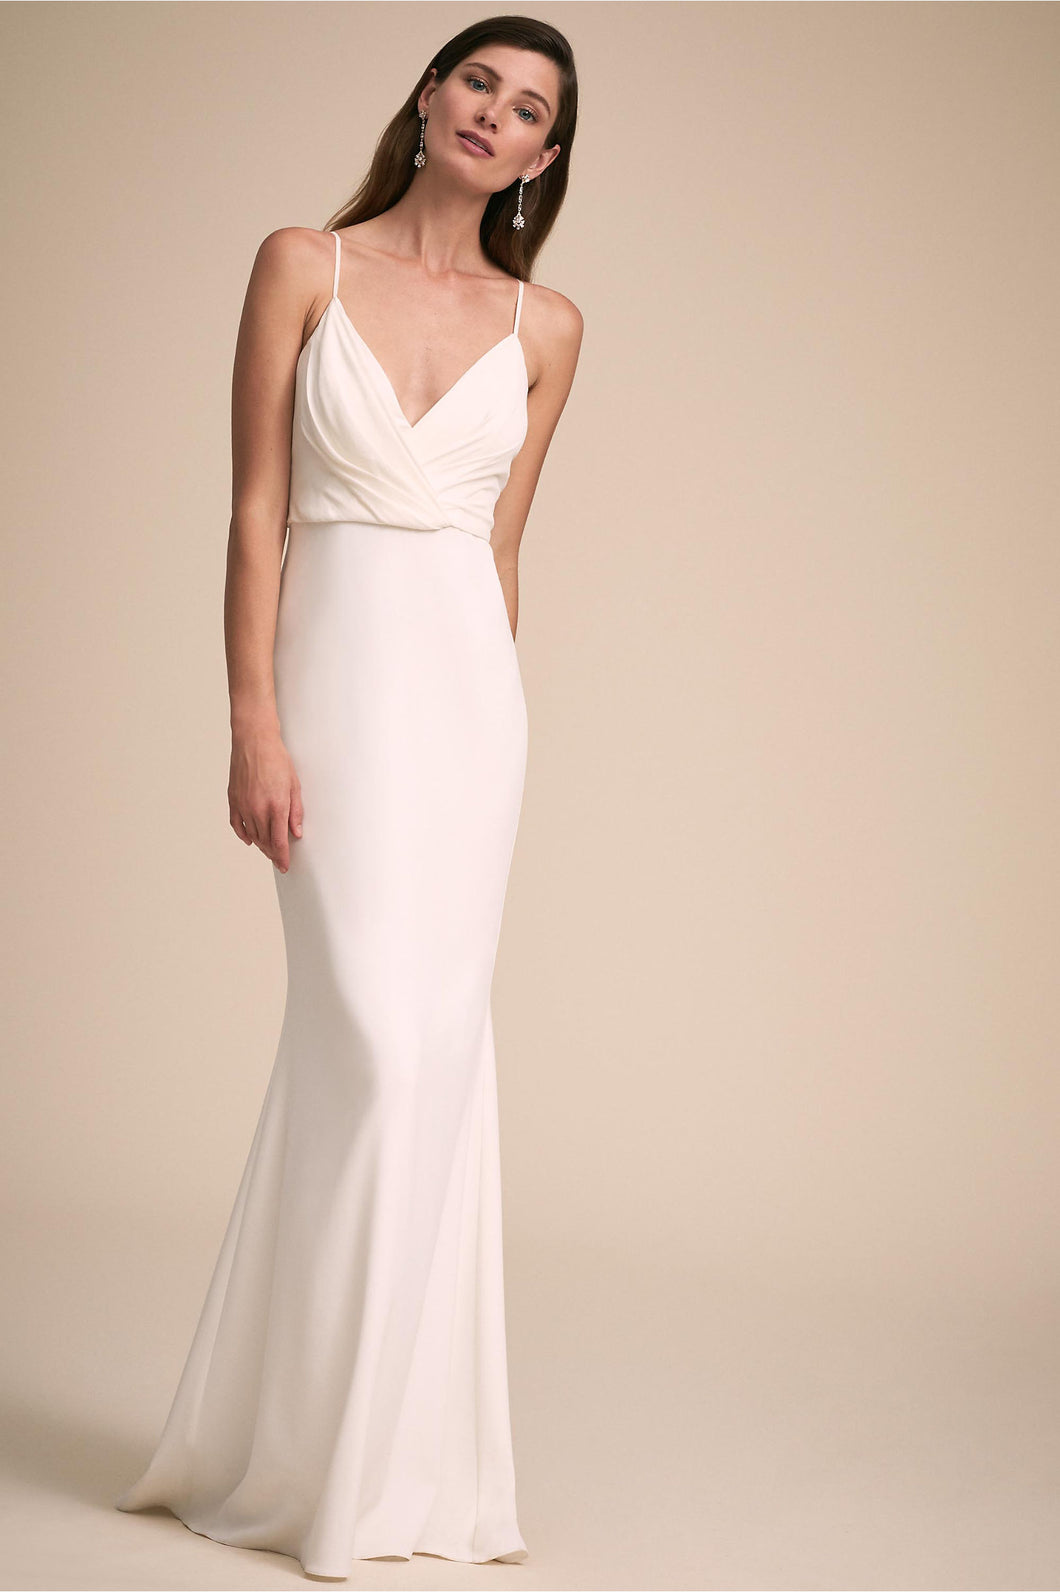 Badgley Mischka 'At Last' size 6 new wedding dress front view on model